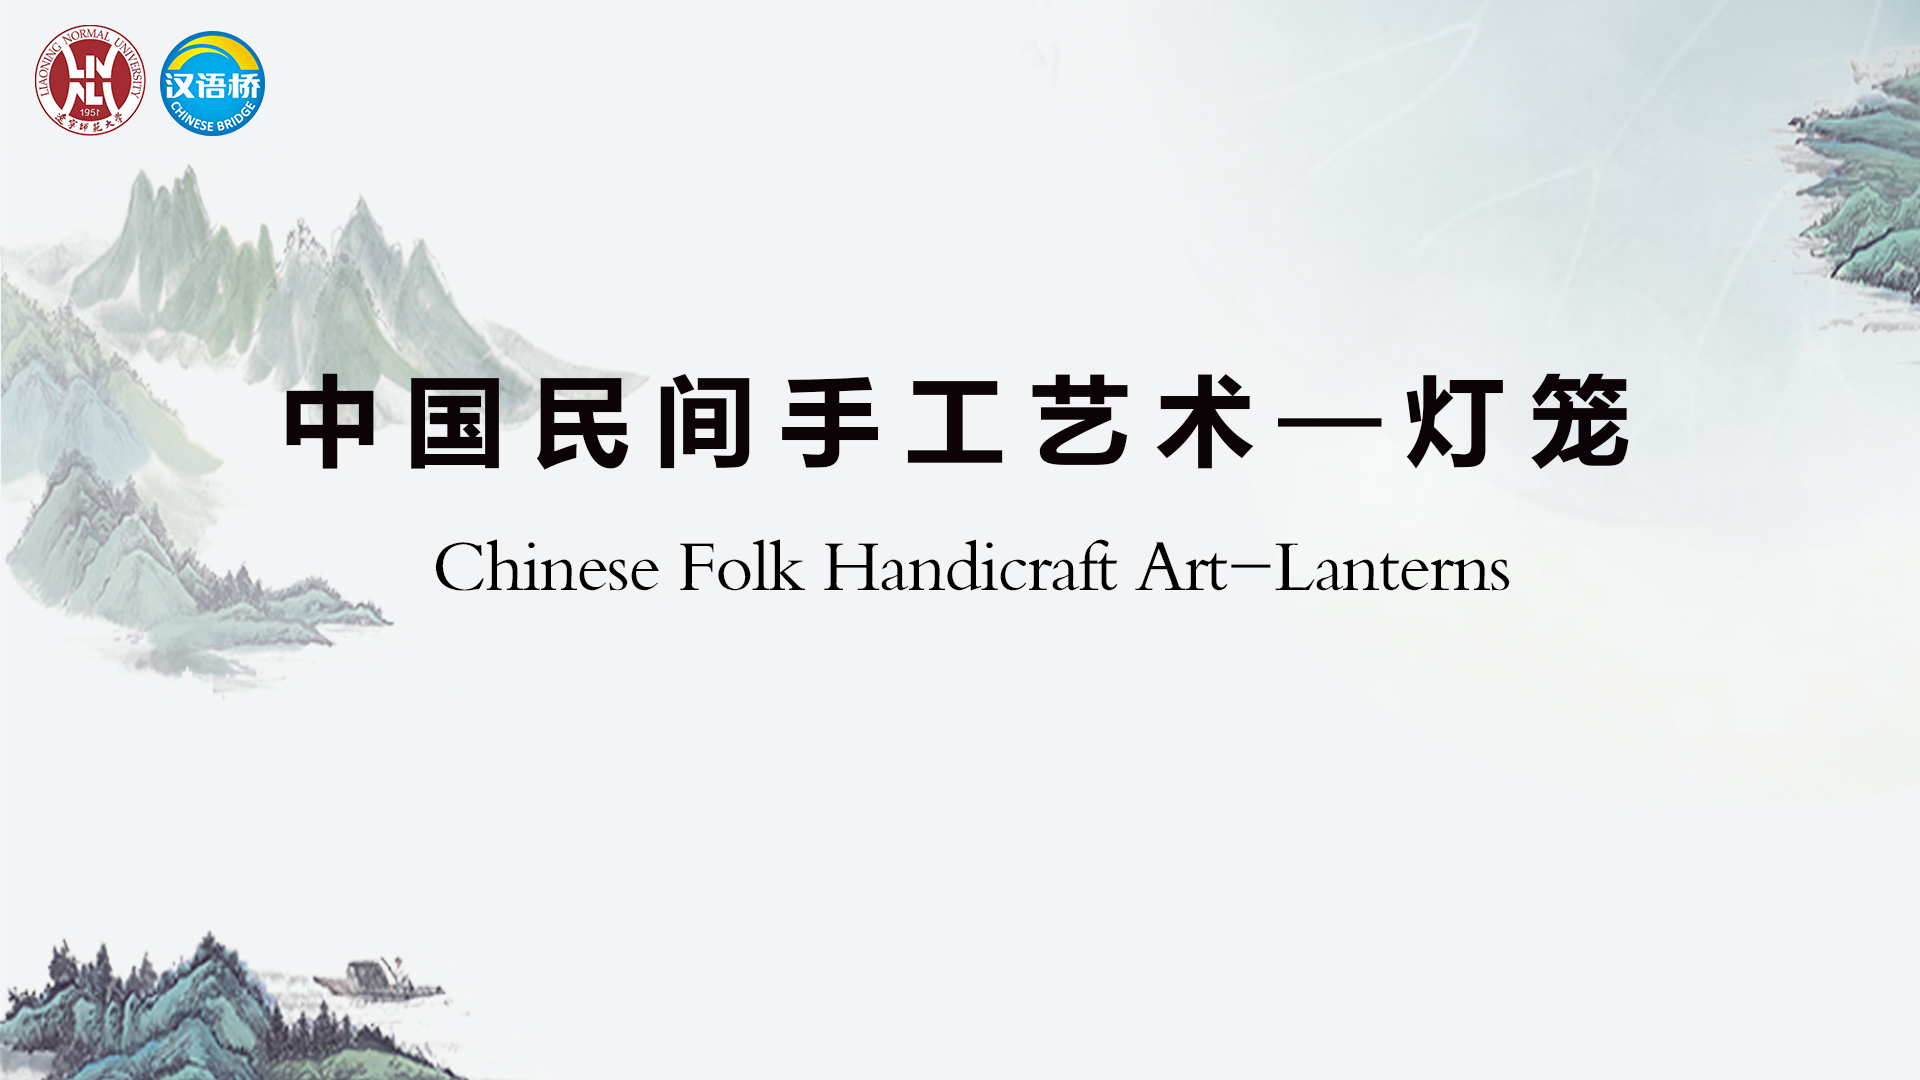 Chinese Folk Handicraft Art--Lanterns